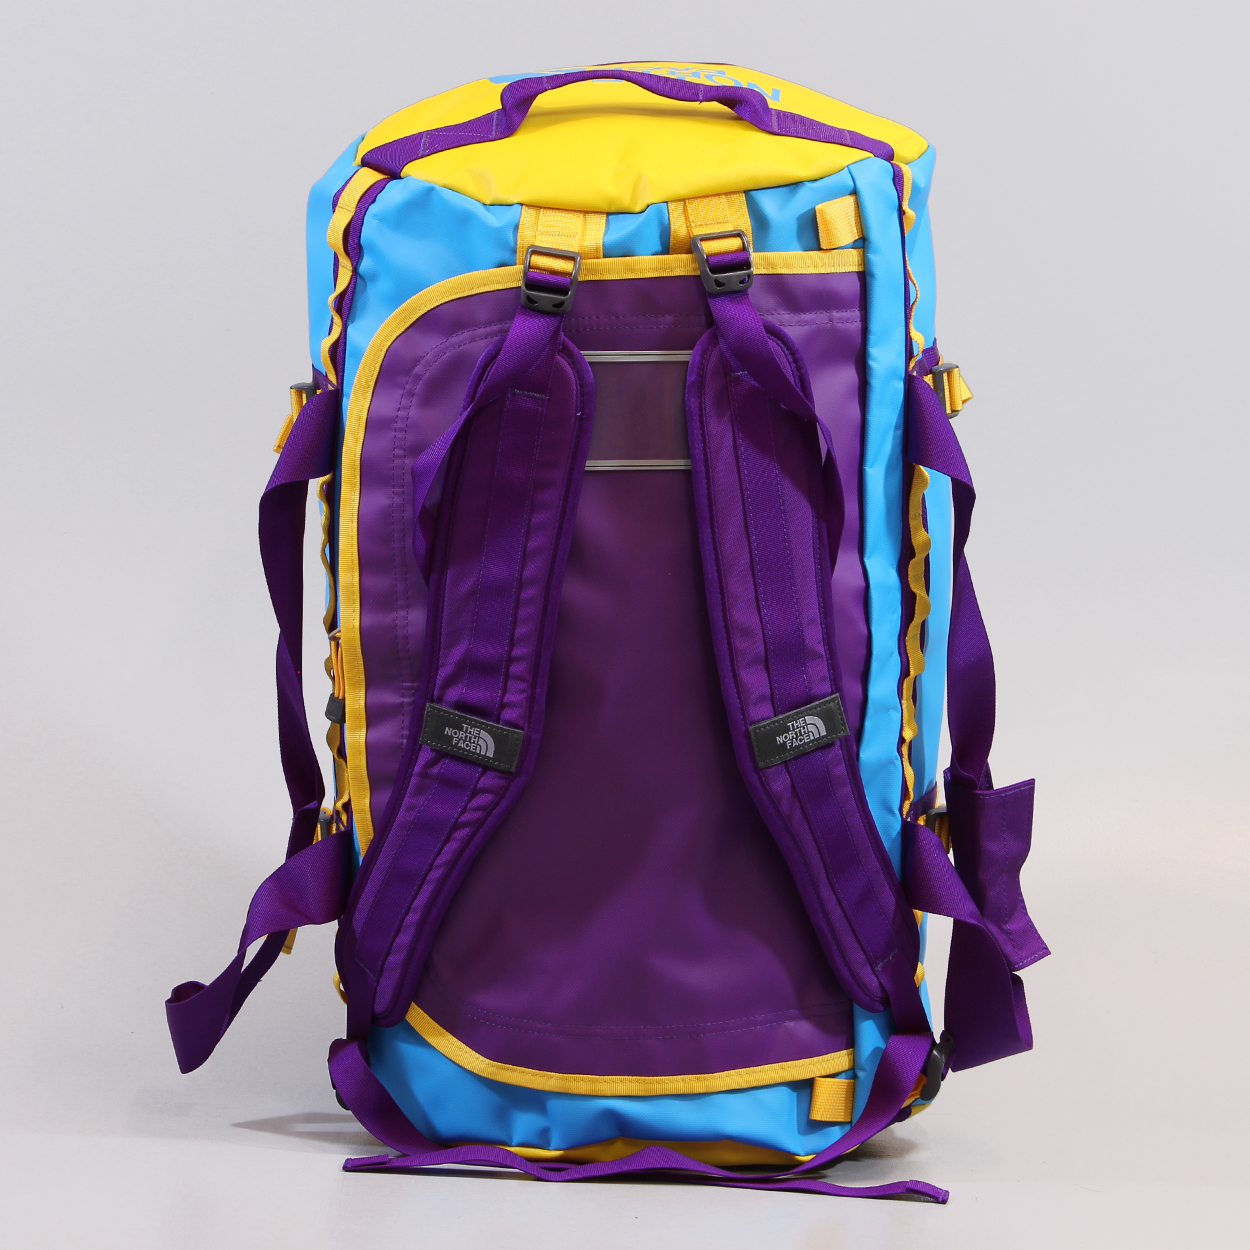 d73cecc9445 ... around the world you will see The North Face Base Camp Duffel being  collected by explorers and savvy travellers. 70 litres of space in Iris  Purple and ...